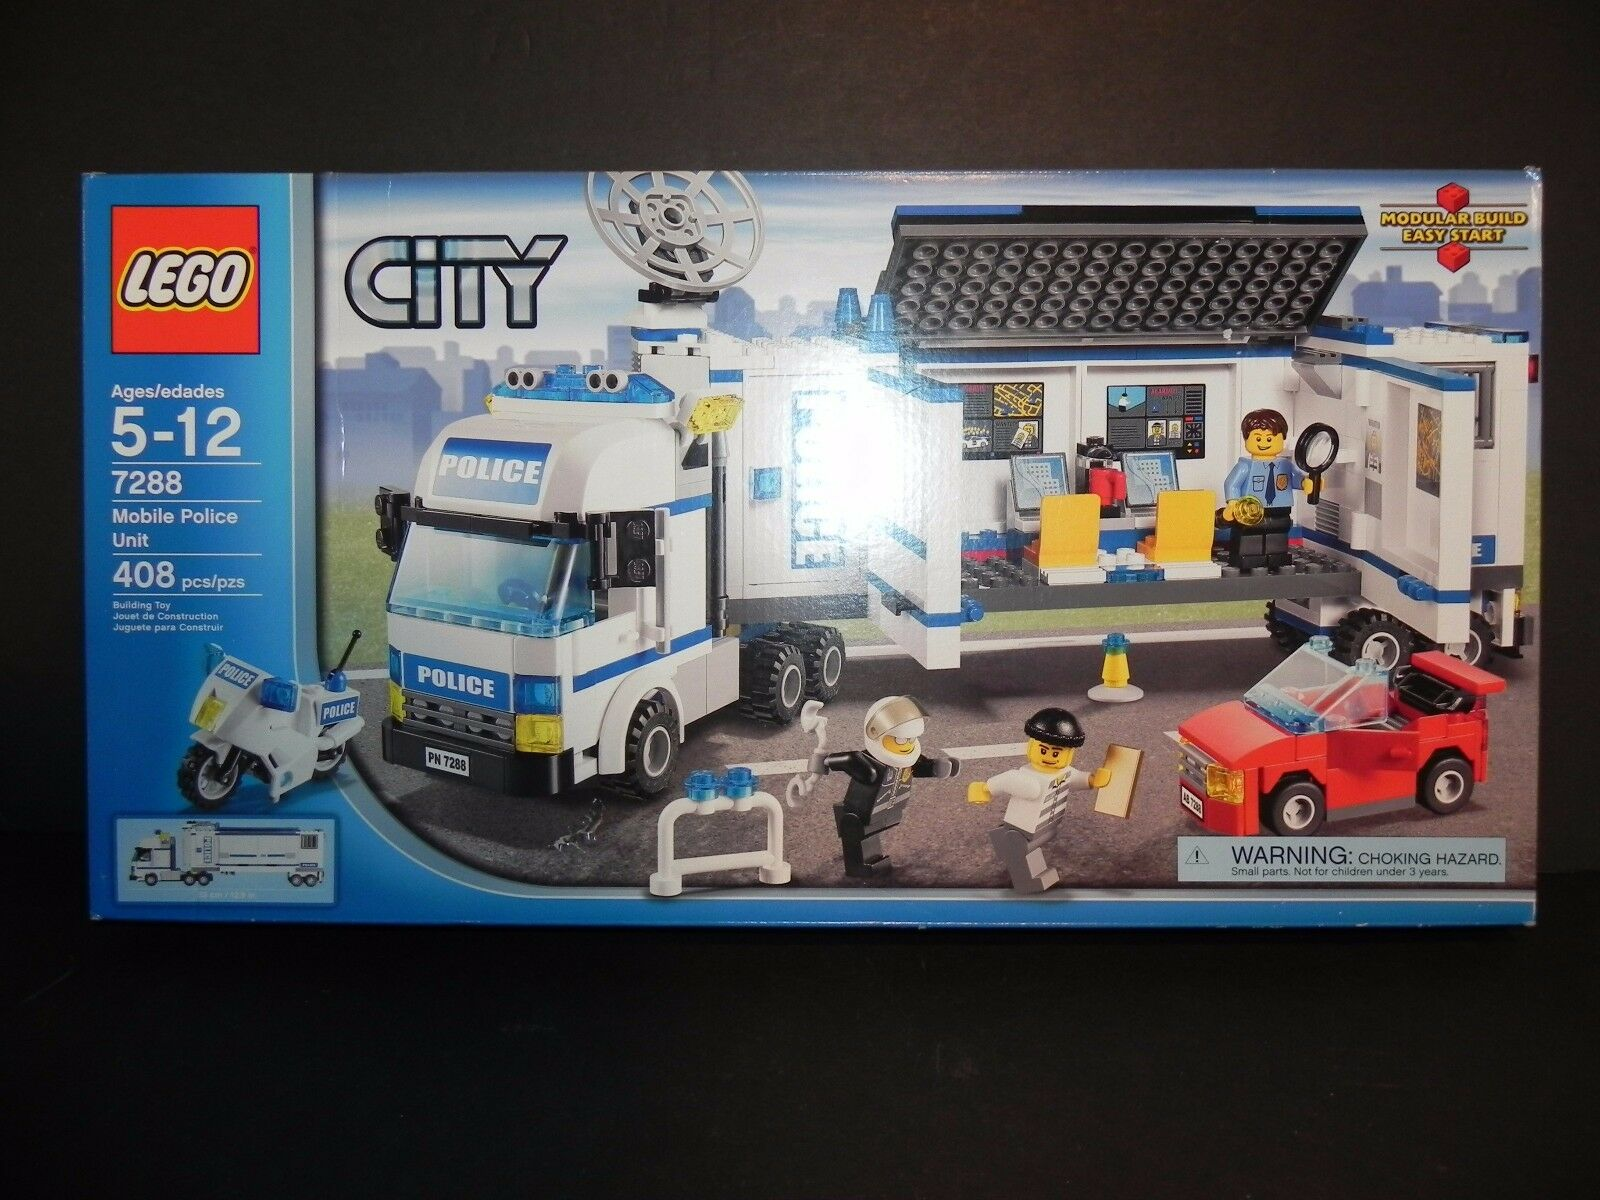 LEGO CITY - 7288 MOBILE POLICE UNIT  408 Pieces from 2011 - New in Sealed Box